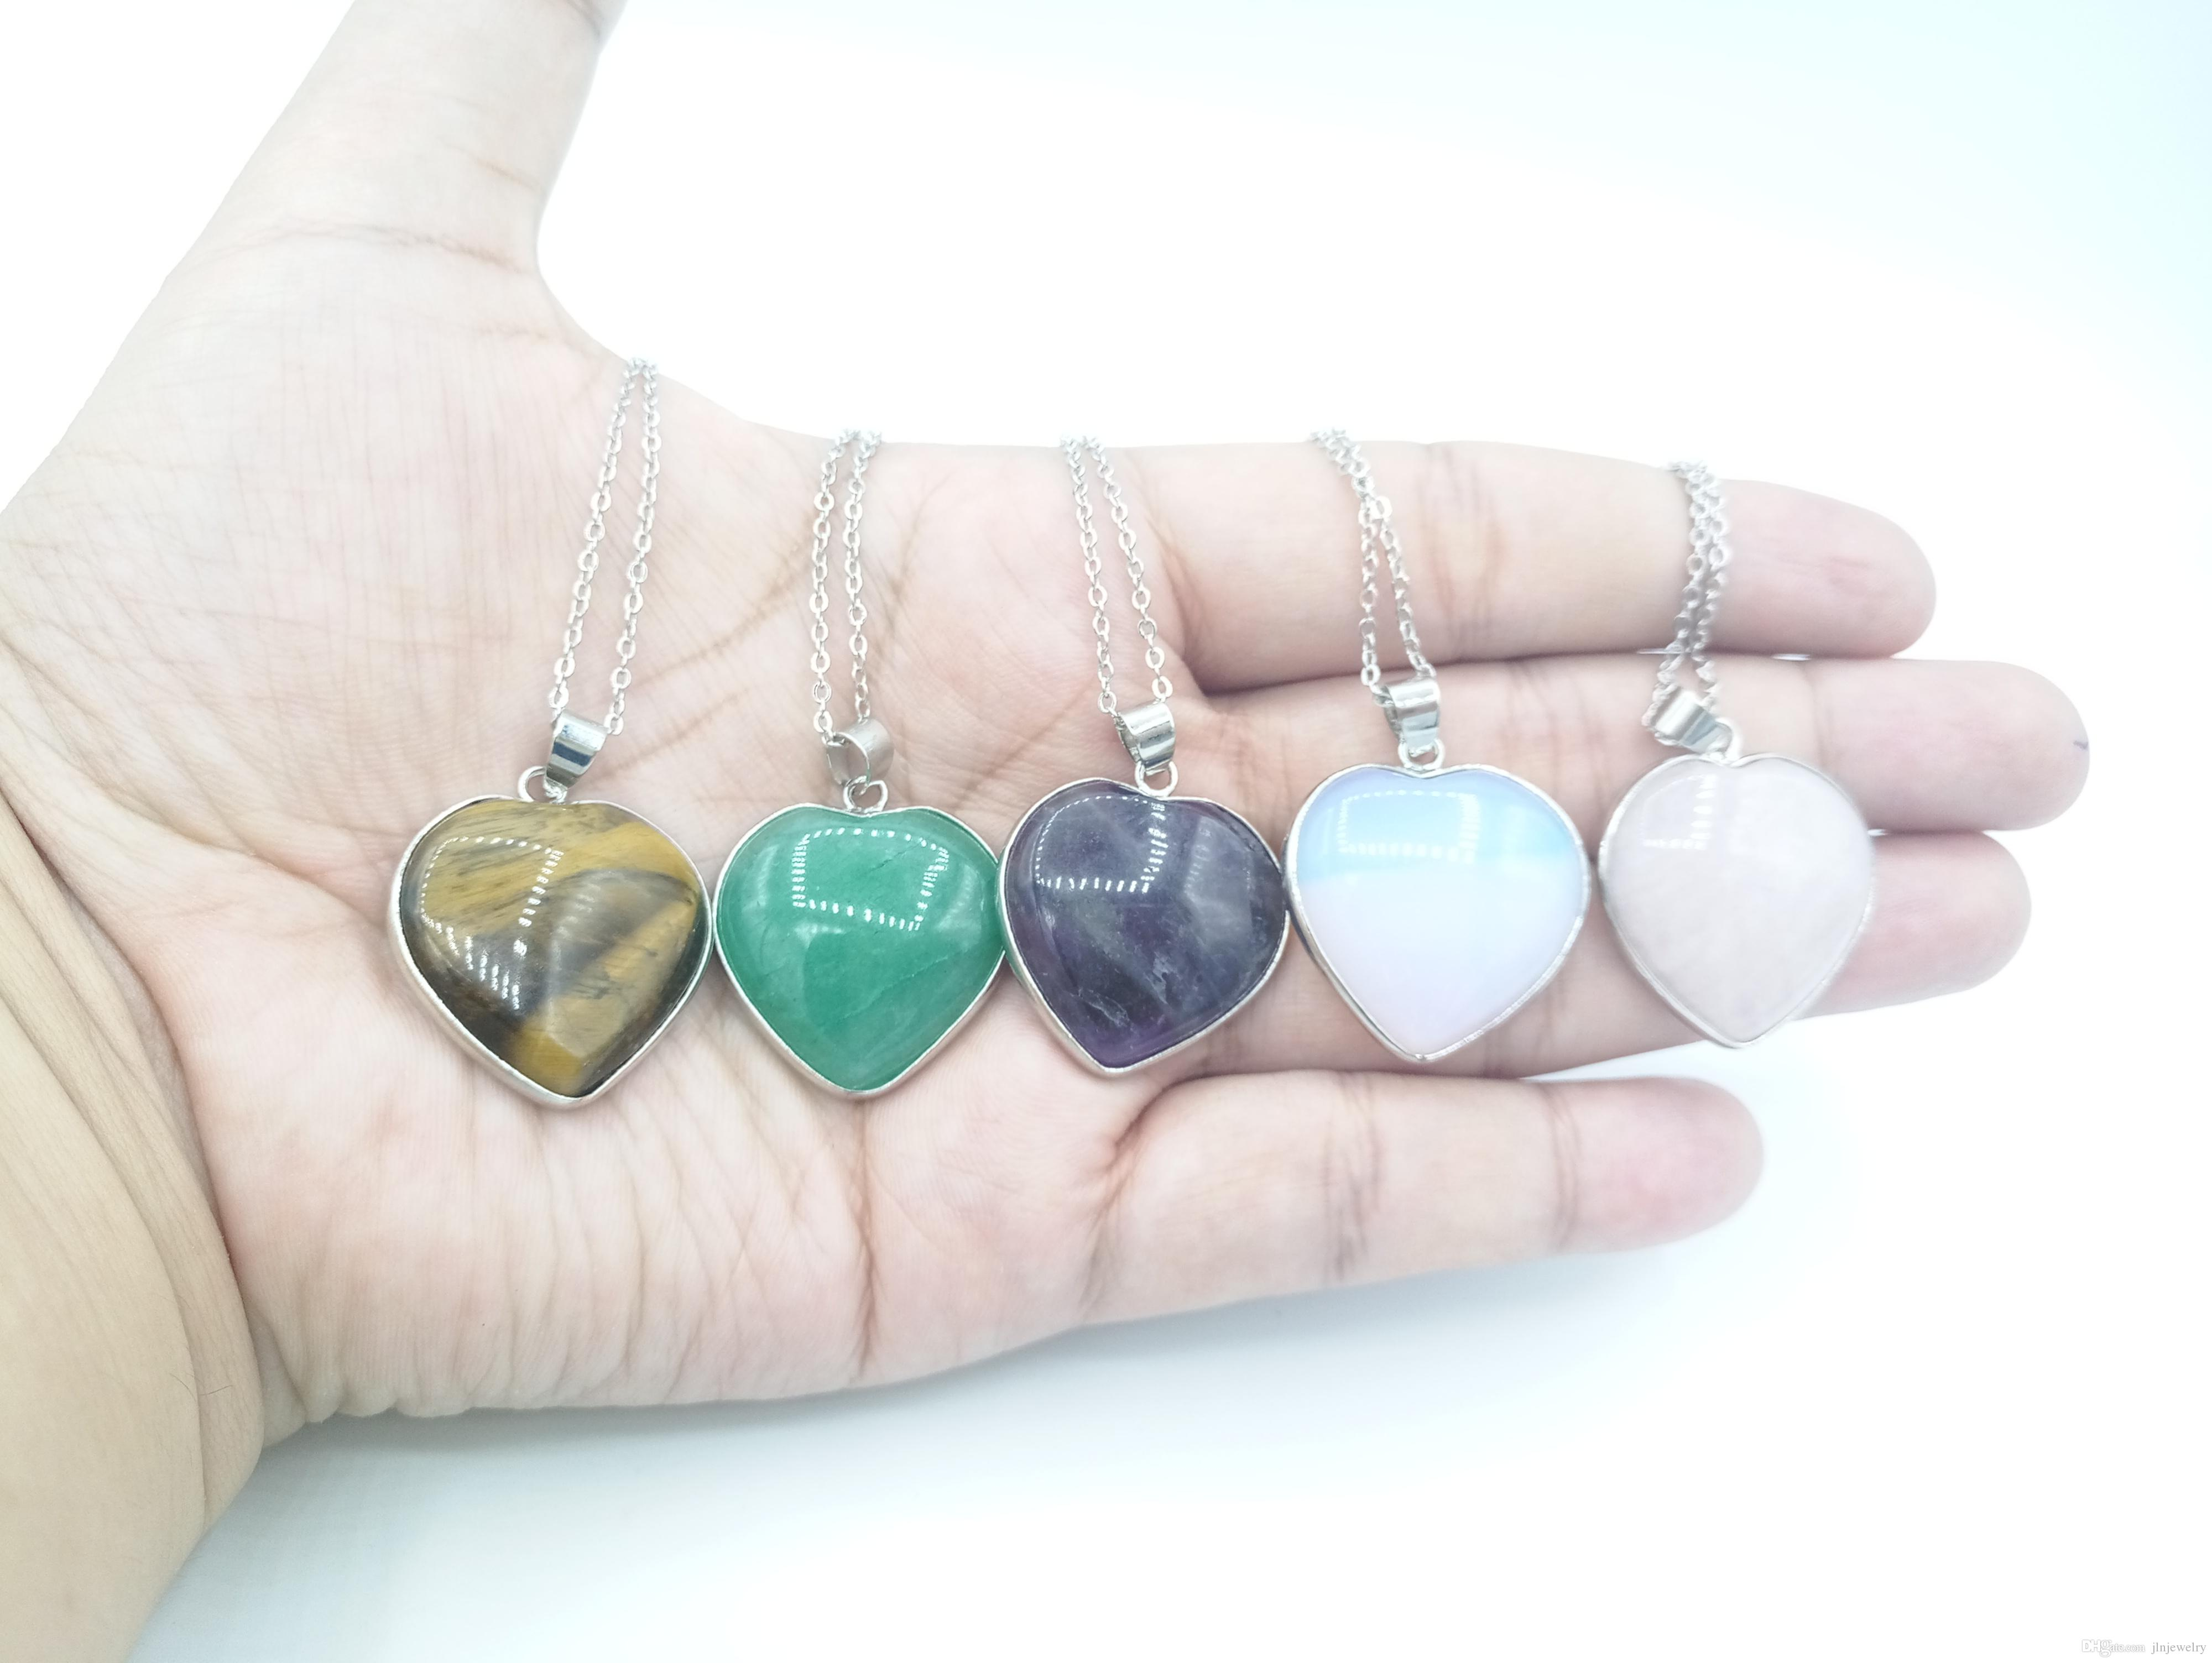 Jln gemstone heart shape stone pendant rose quartzgreen aventurine jln gemstone heart shape stone pendant rose quartzgreen aventurineamethysttiger eyemoonstone with brass chain stone heart pendant gemstone pendant heart mozeypictures Image collections